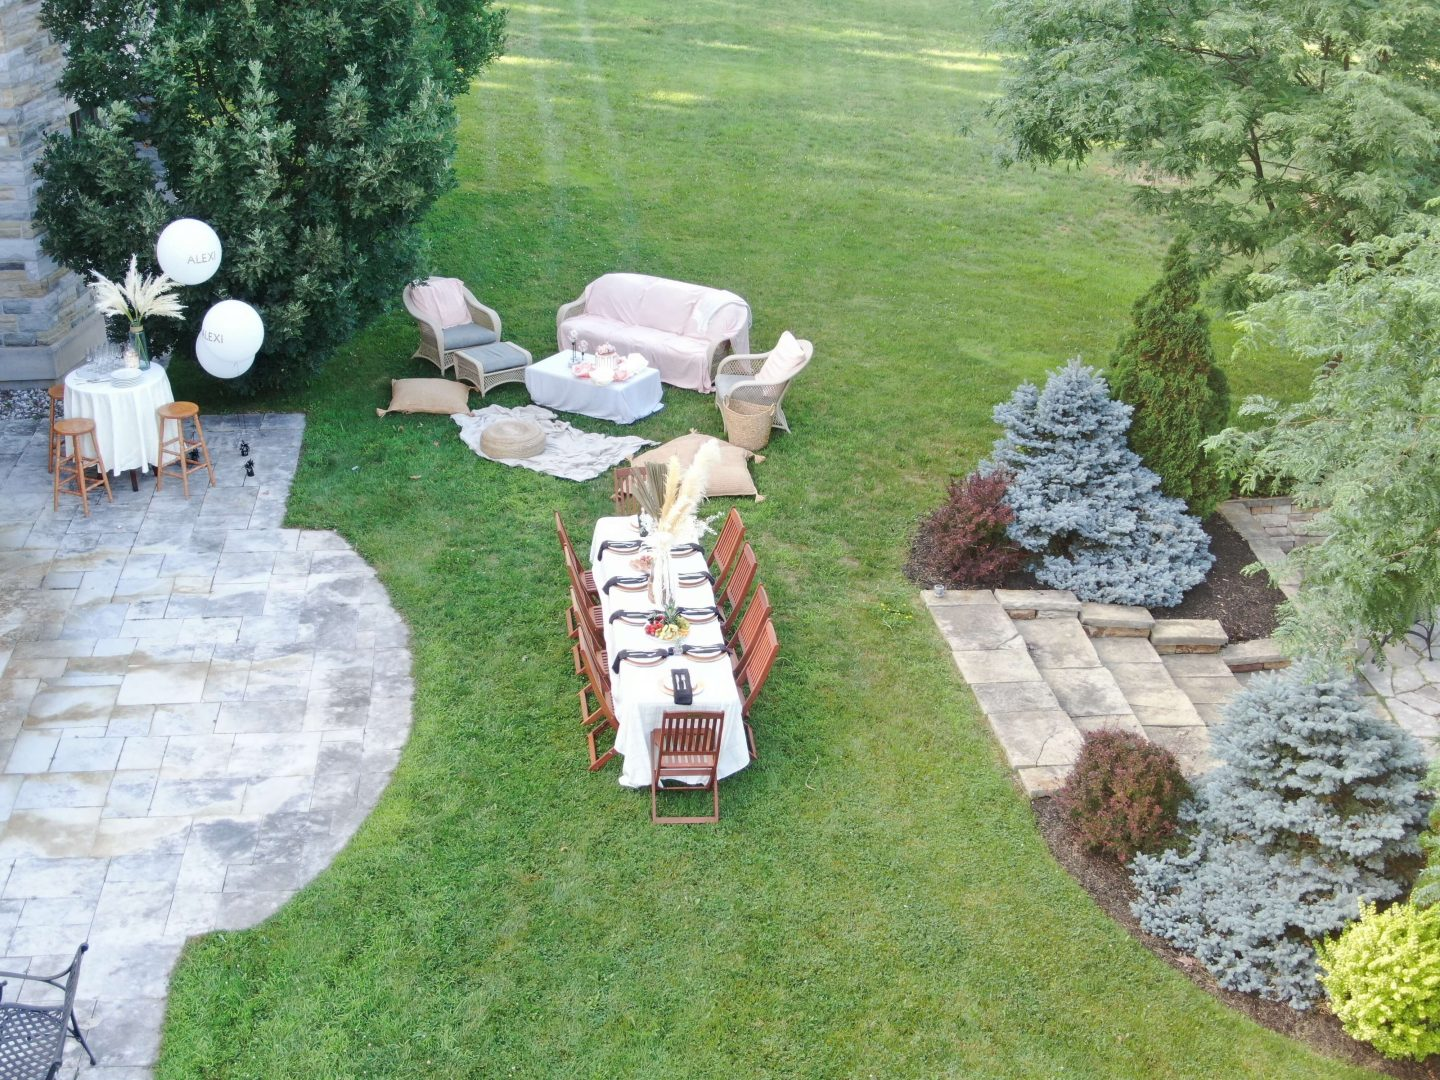 Tips For Throwing An Elegant Outdoor Party With Everyday Items.